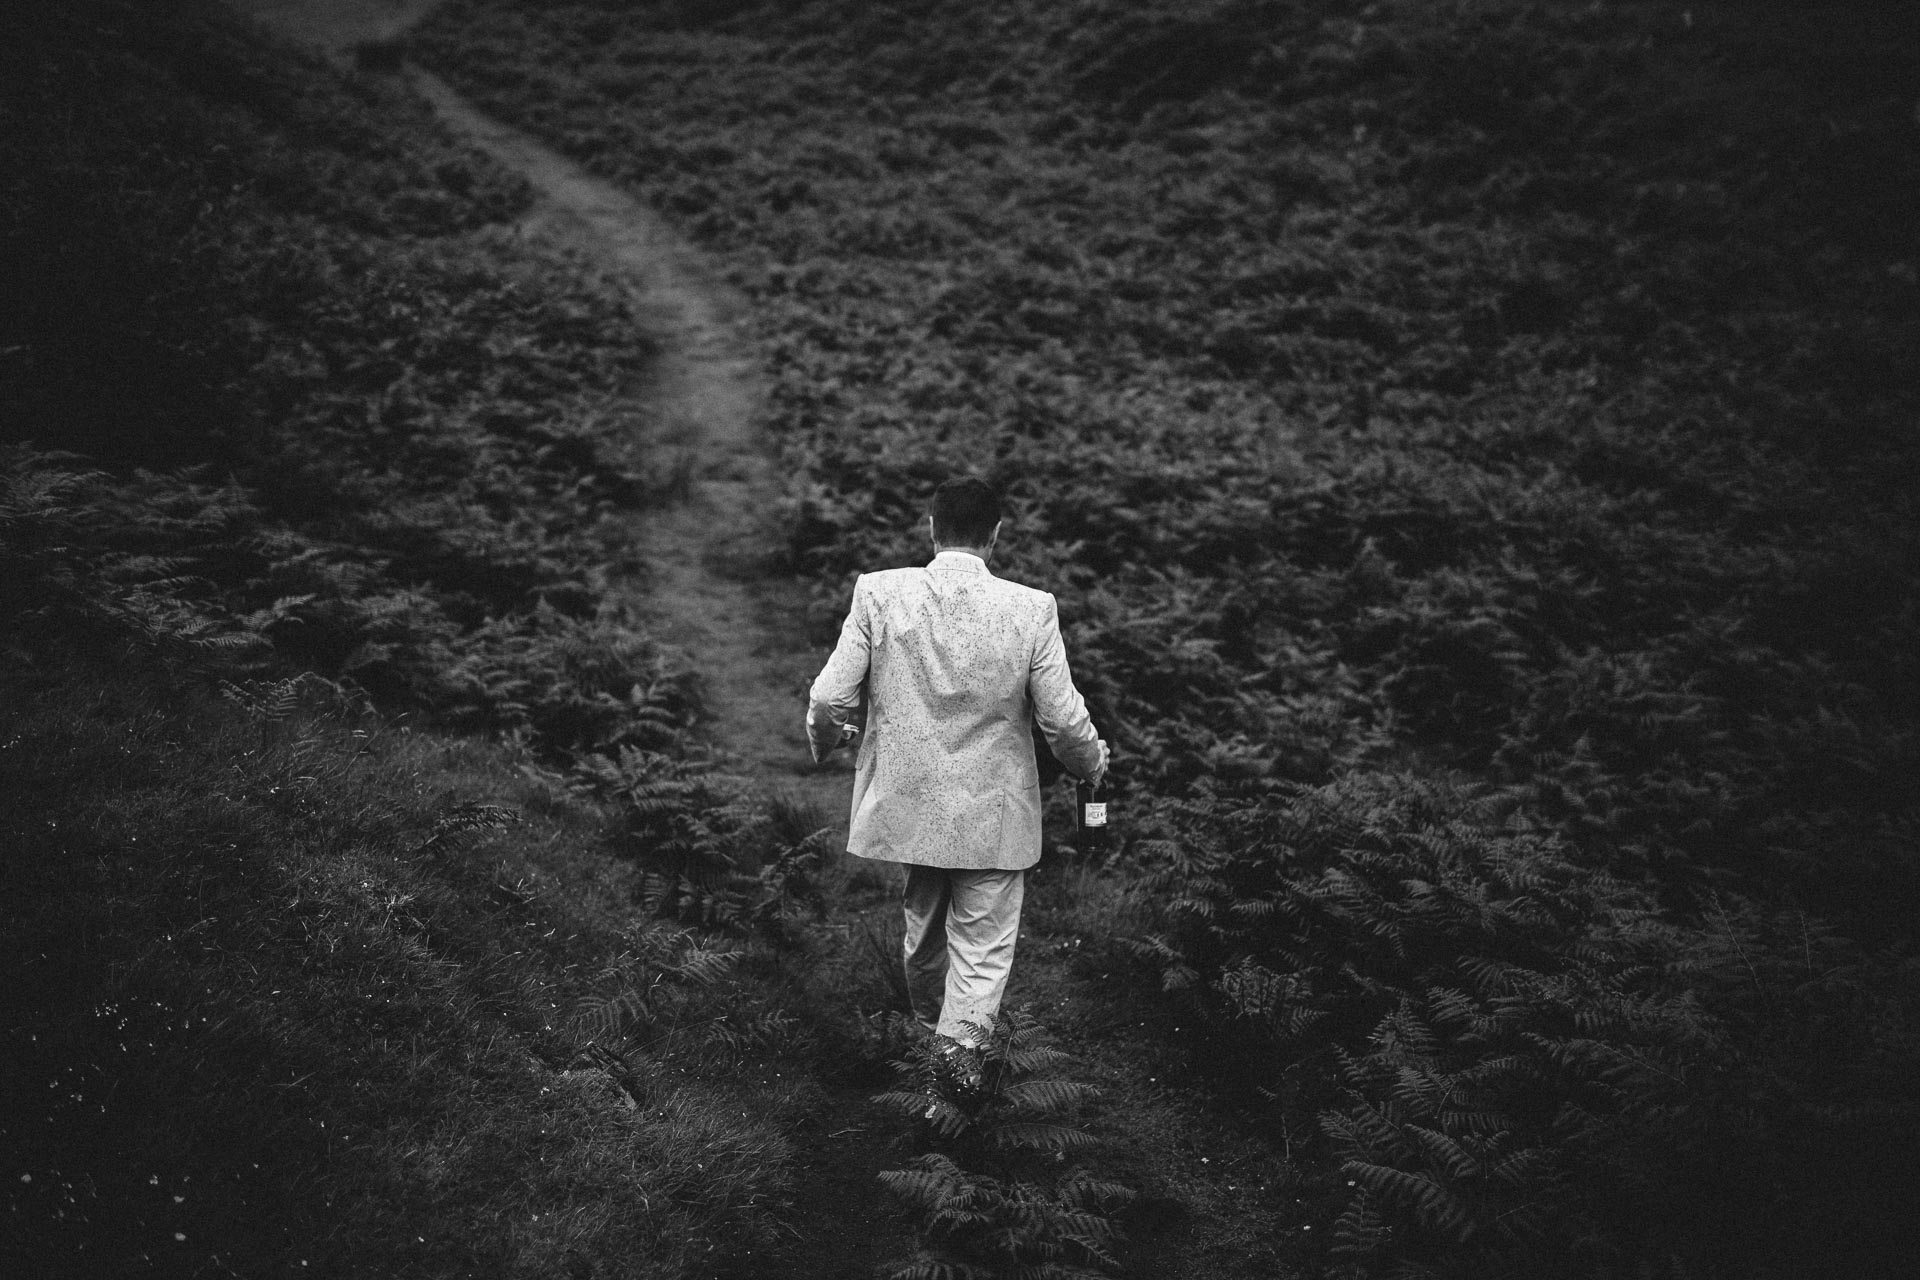 Megan_Matt_Elopement_IntimateWedding_Scotland_IsleOfSkye_JeanLaurentGaudy_062